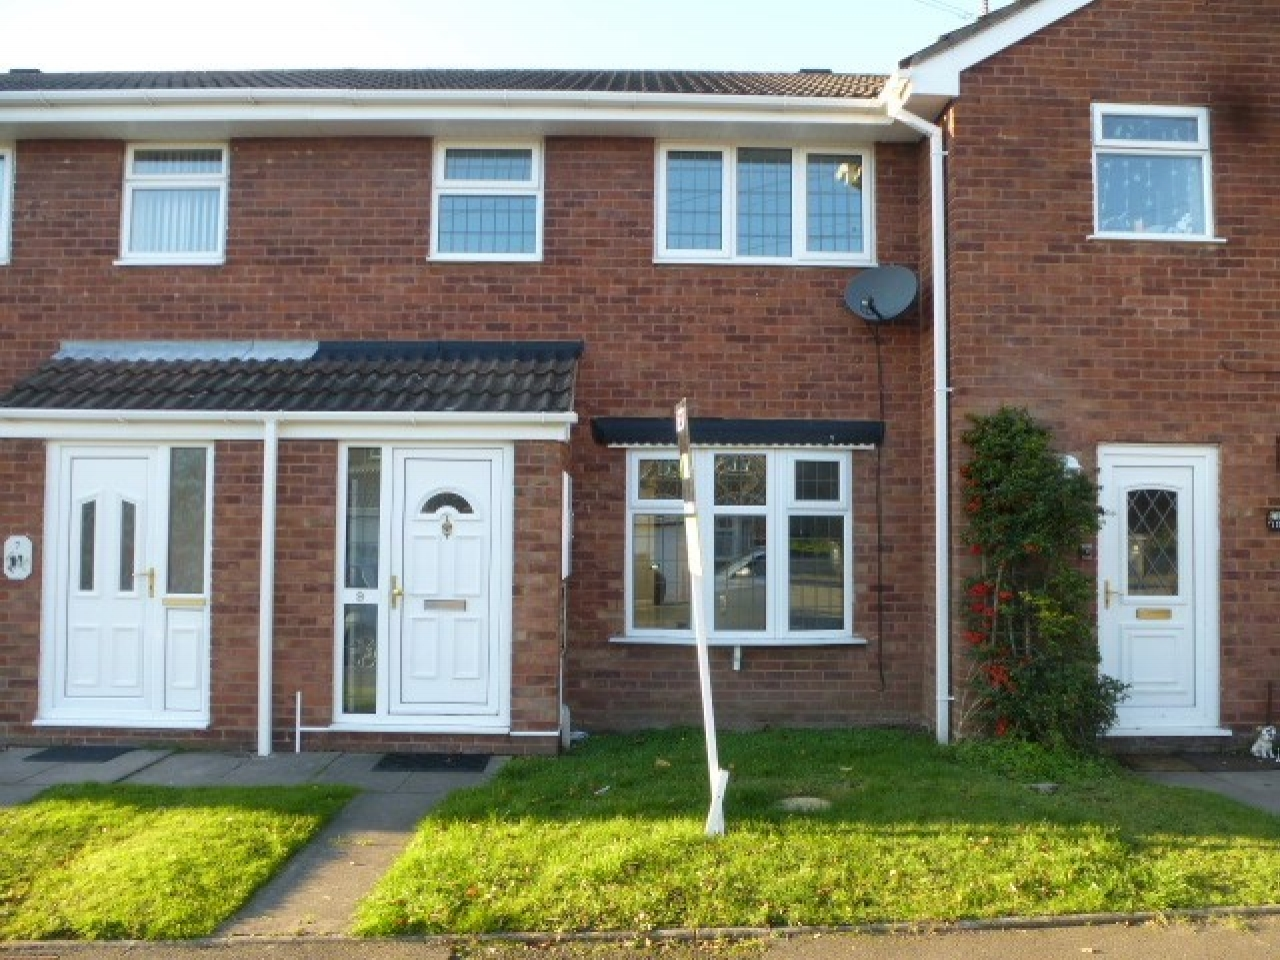 2 Bedroom Mid Terraced House To Rent Image 1